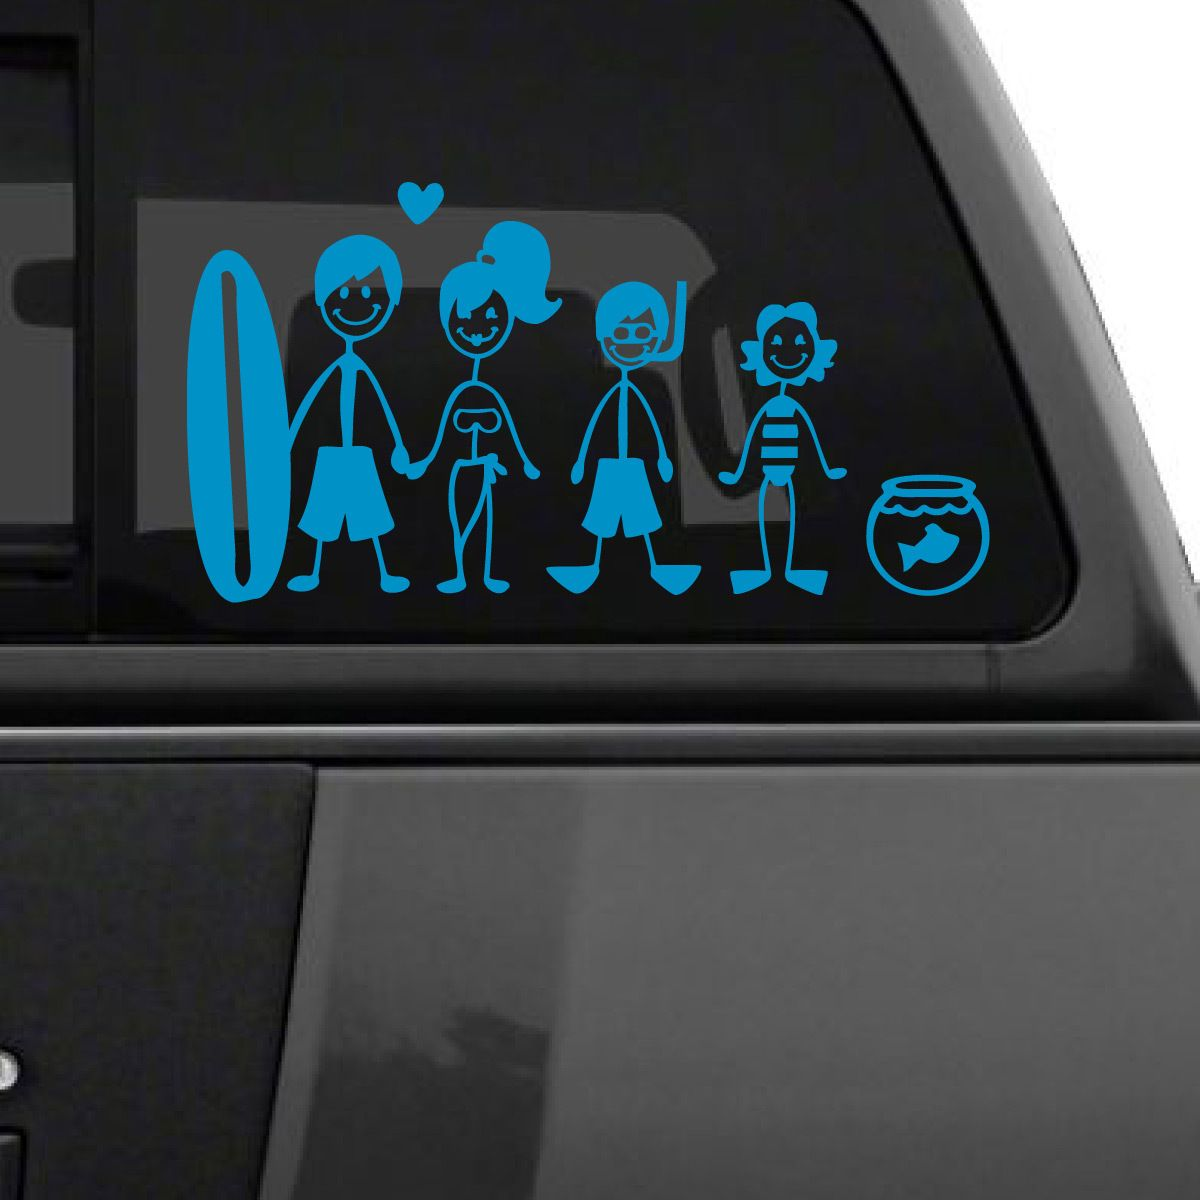 Beach Family Car Decal Family Car Decals Car Decals Family Car Stickers [ 1200 x 1200 Pixel ]